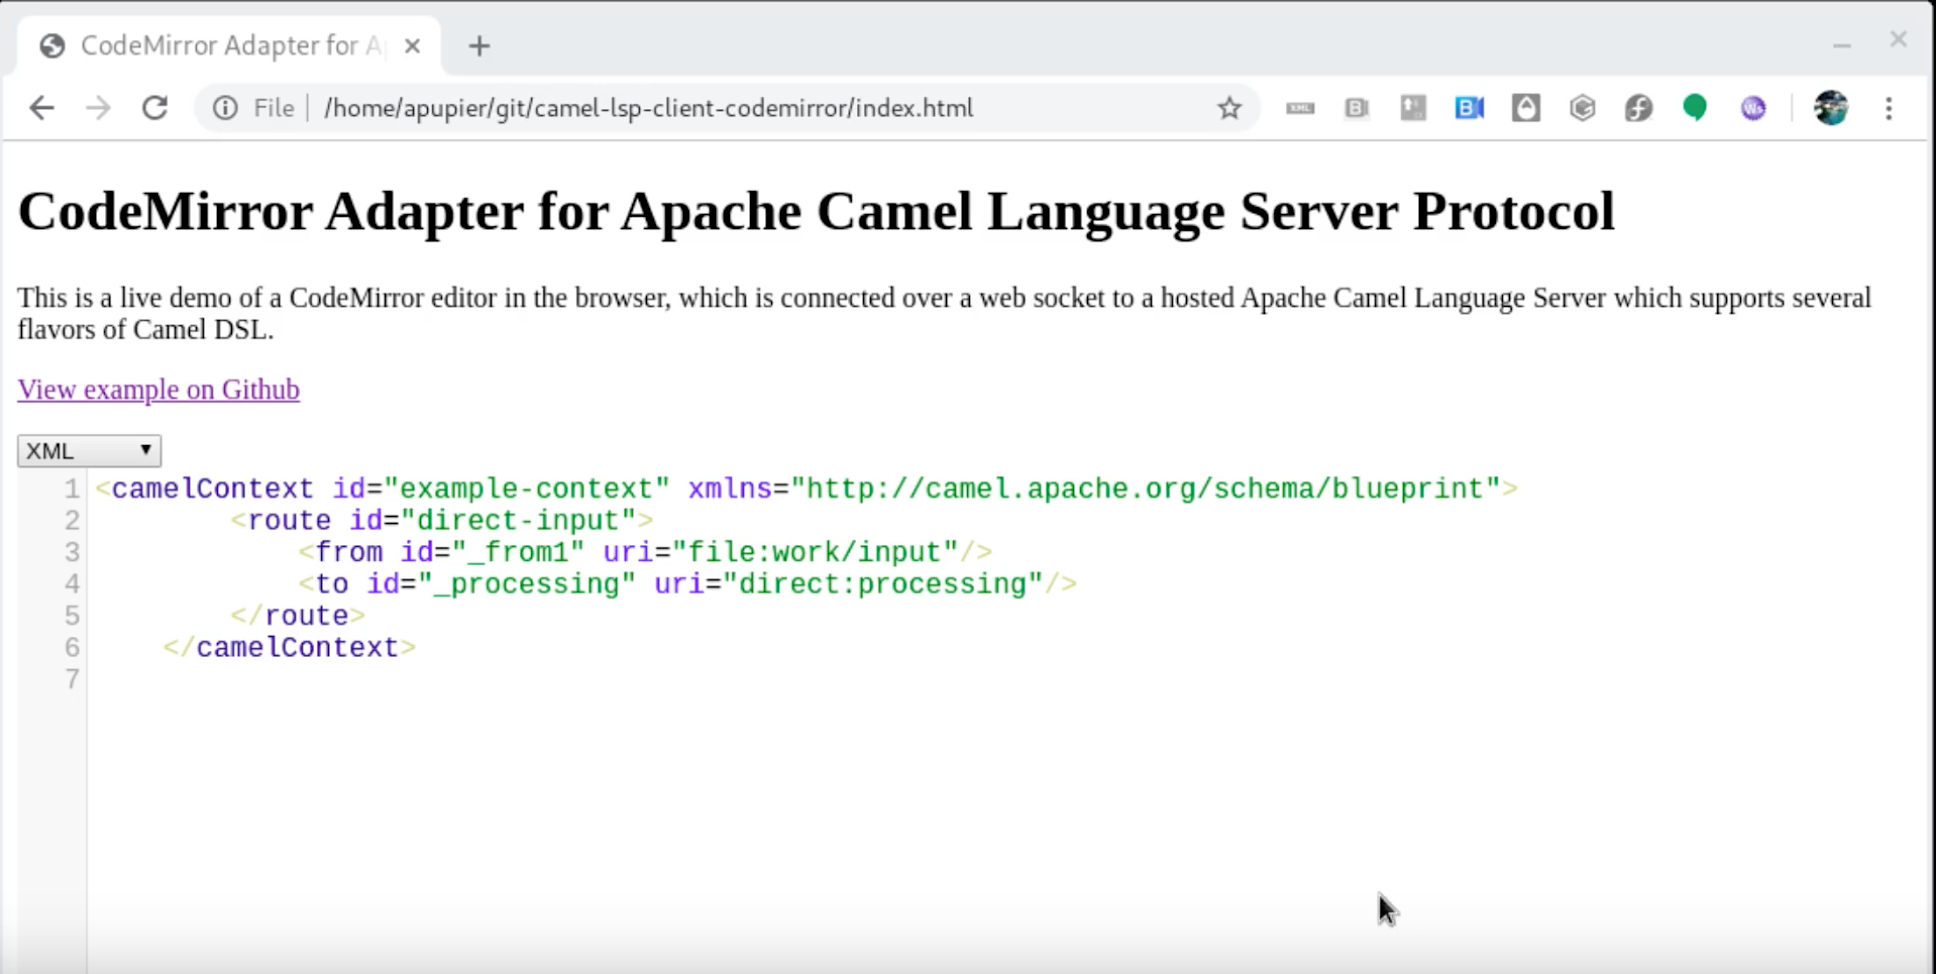 Apache Camel Language support in CodeMirror